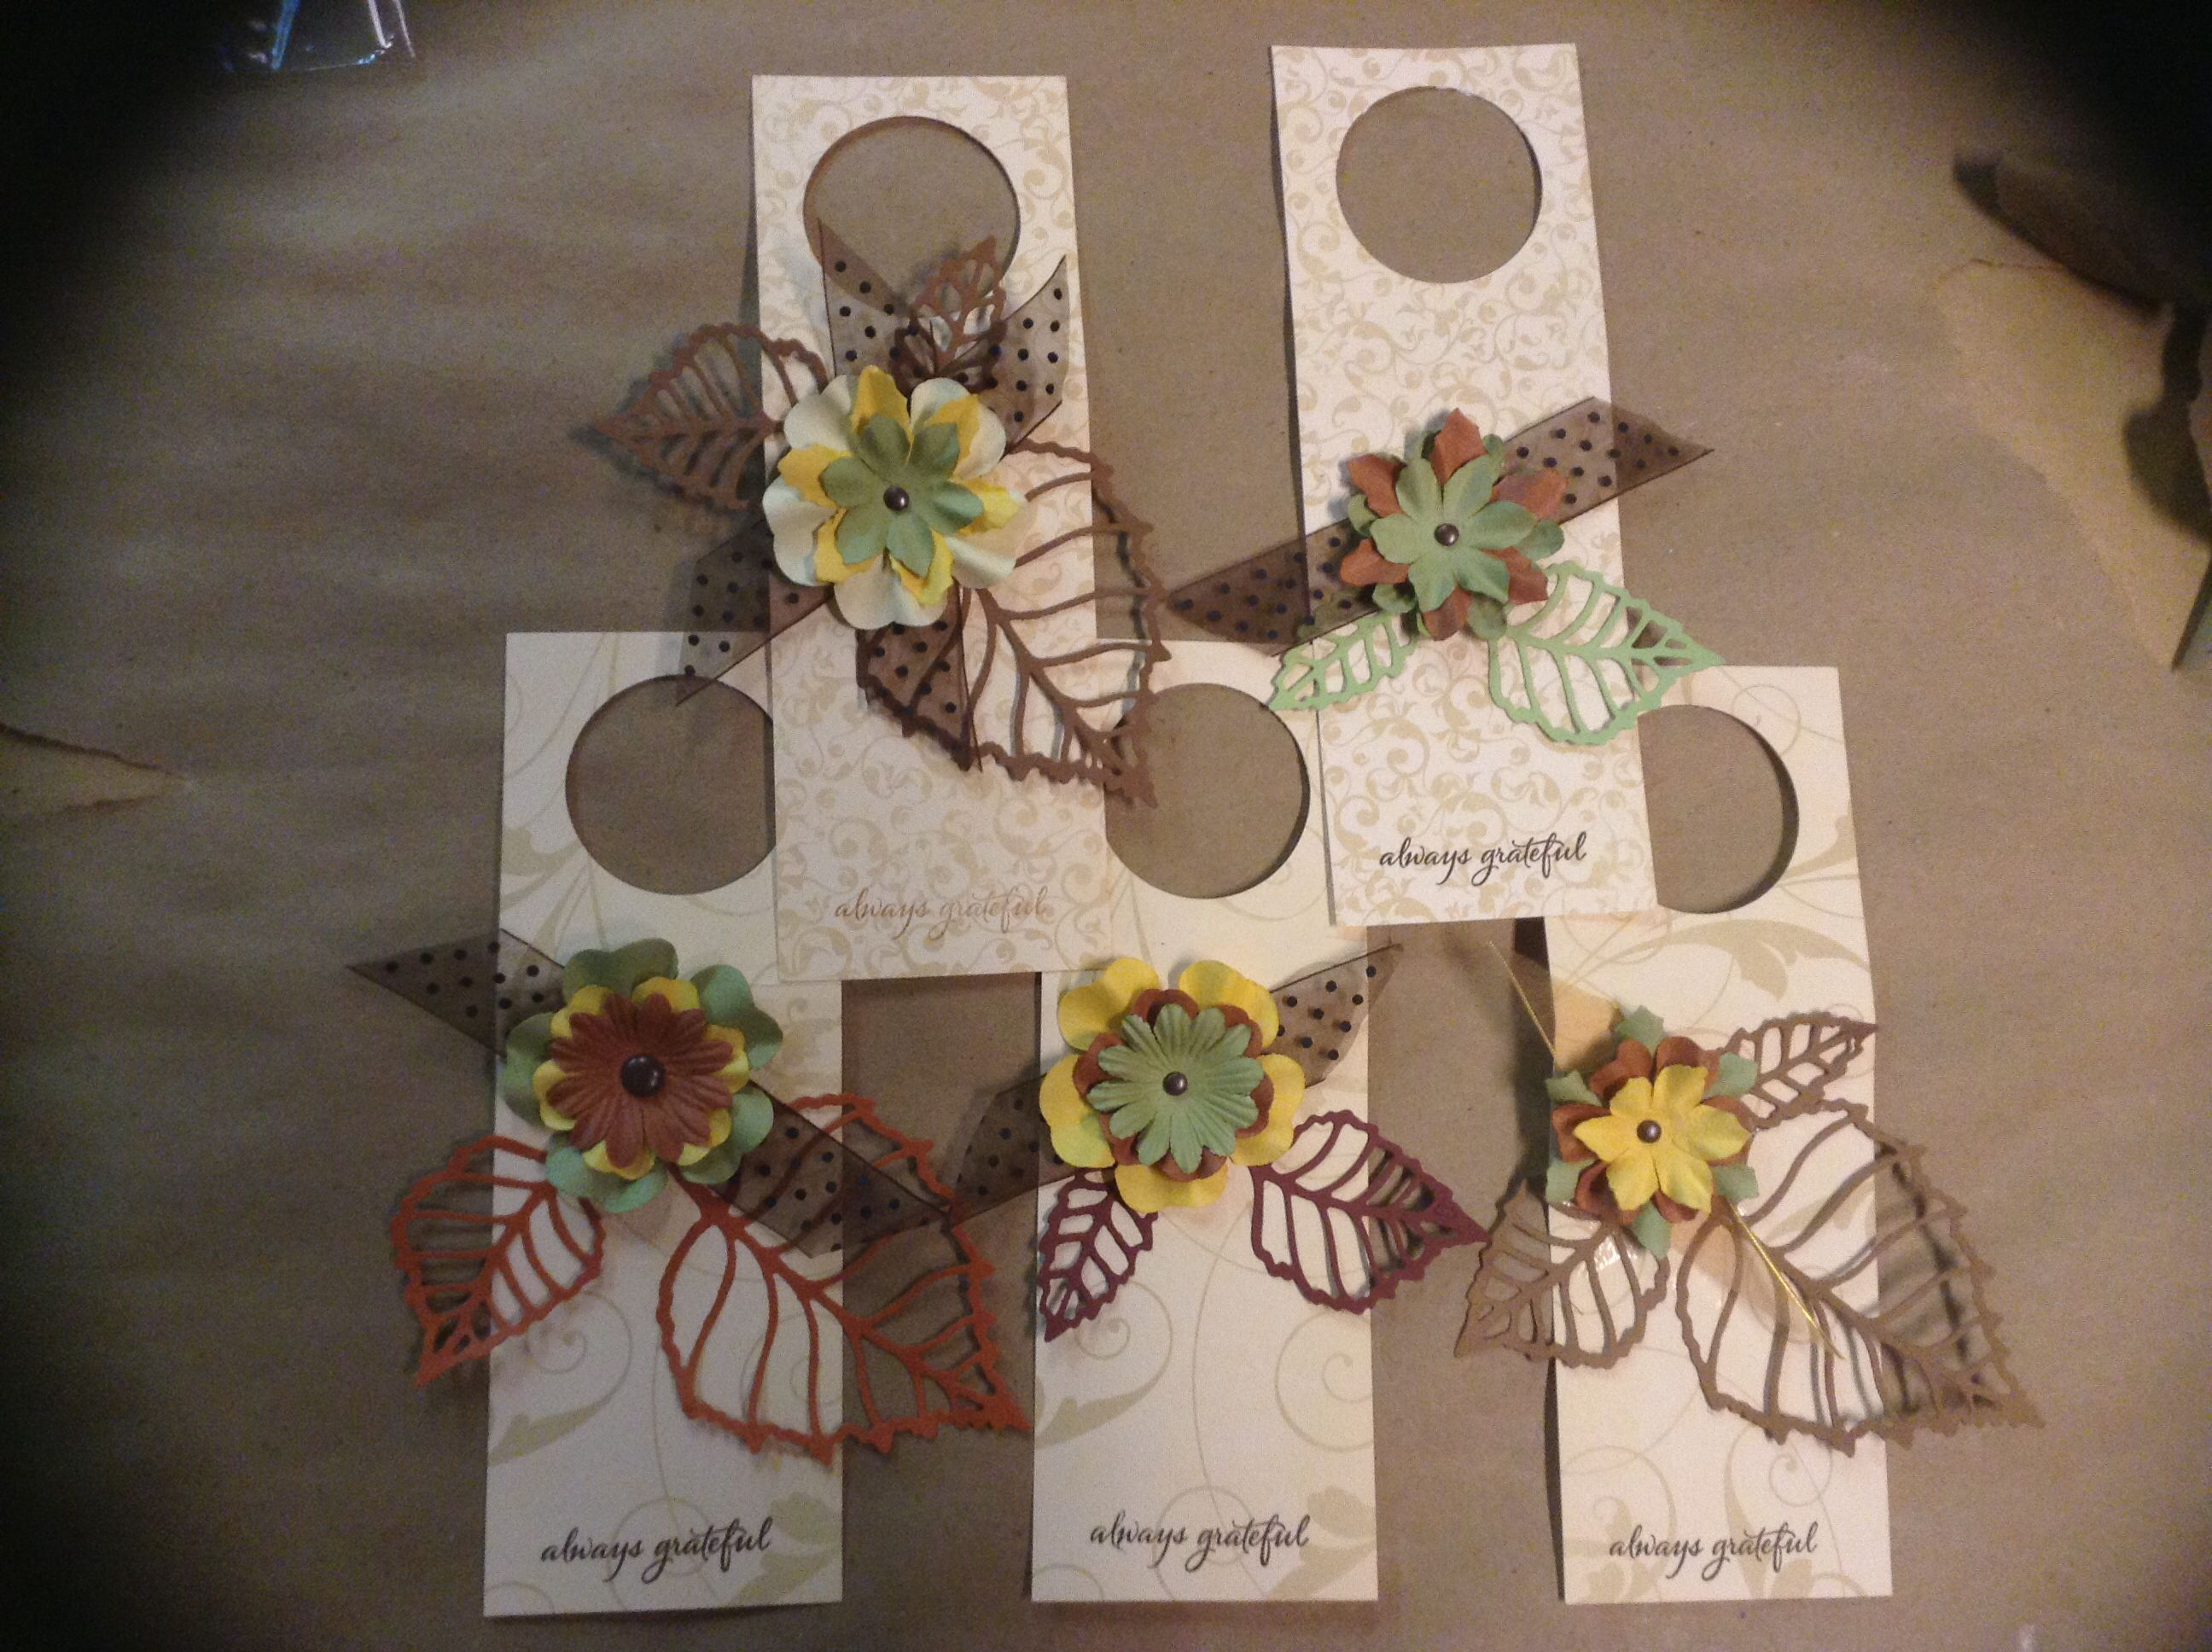 Wine bottle gift tags for fall or Thanksgiving holidays.